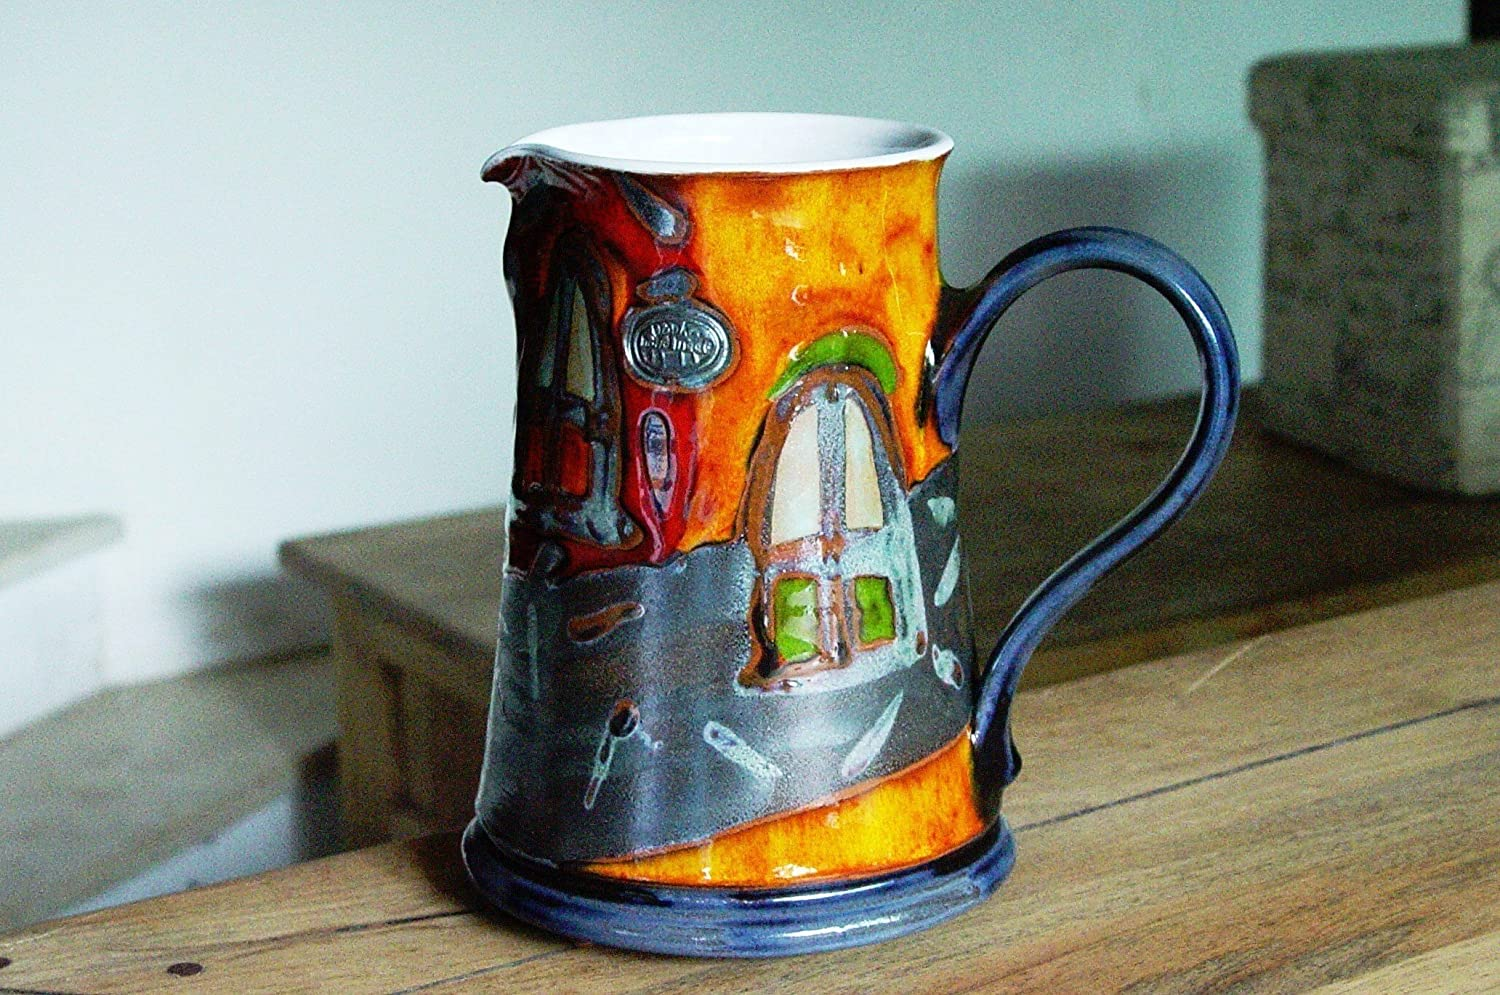 Ceramic Water pitcher, Unique Colorful Pottery Jug, Kitchen Decor